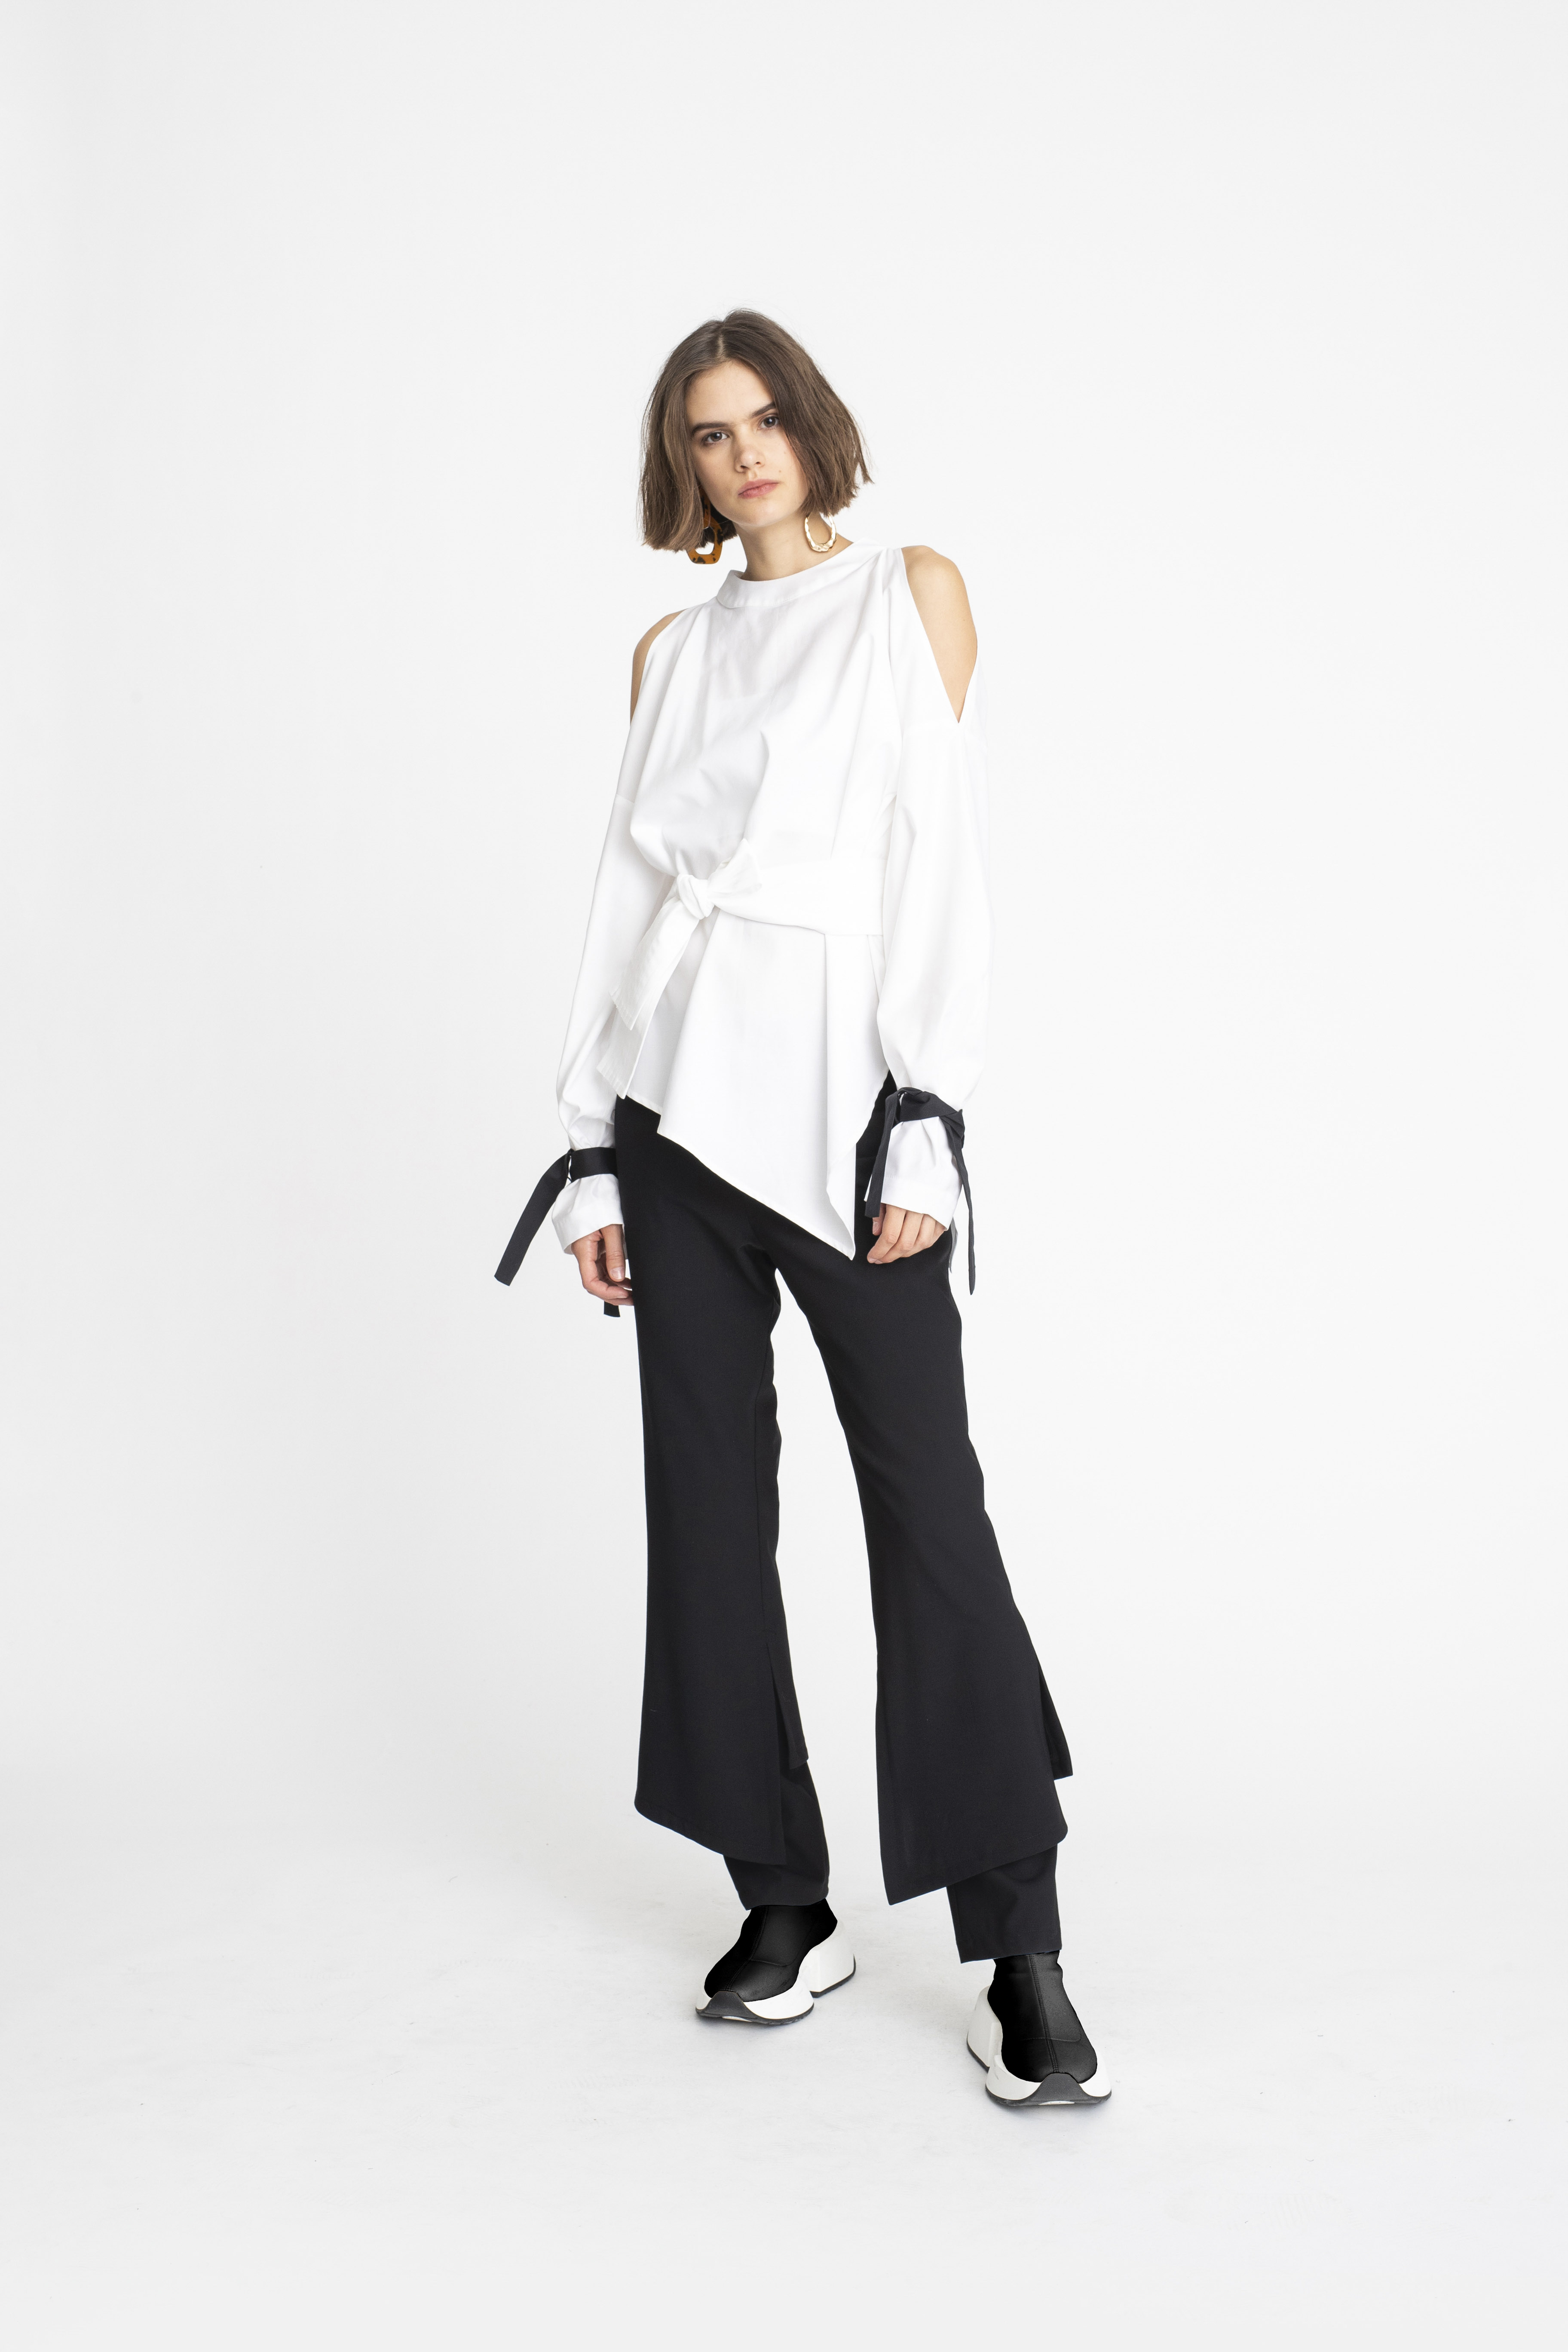 Disparity-Shirt_Duo-Pant_TaylorBoutique_AW19_L120_2647 2